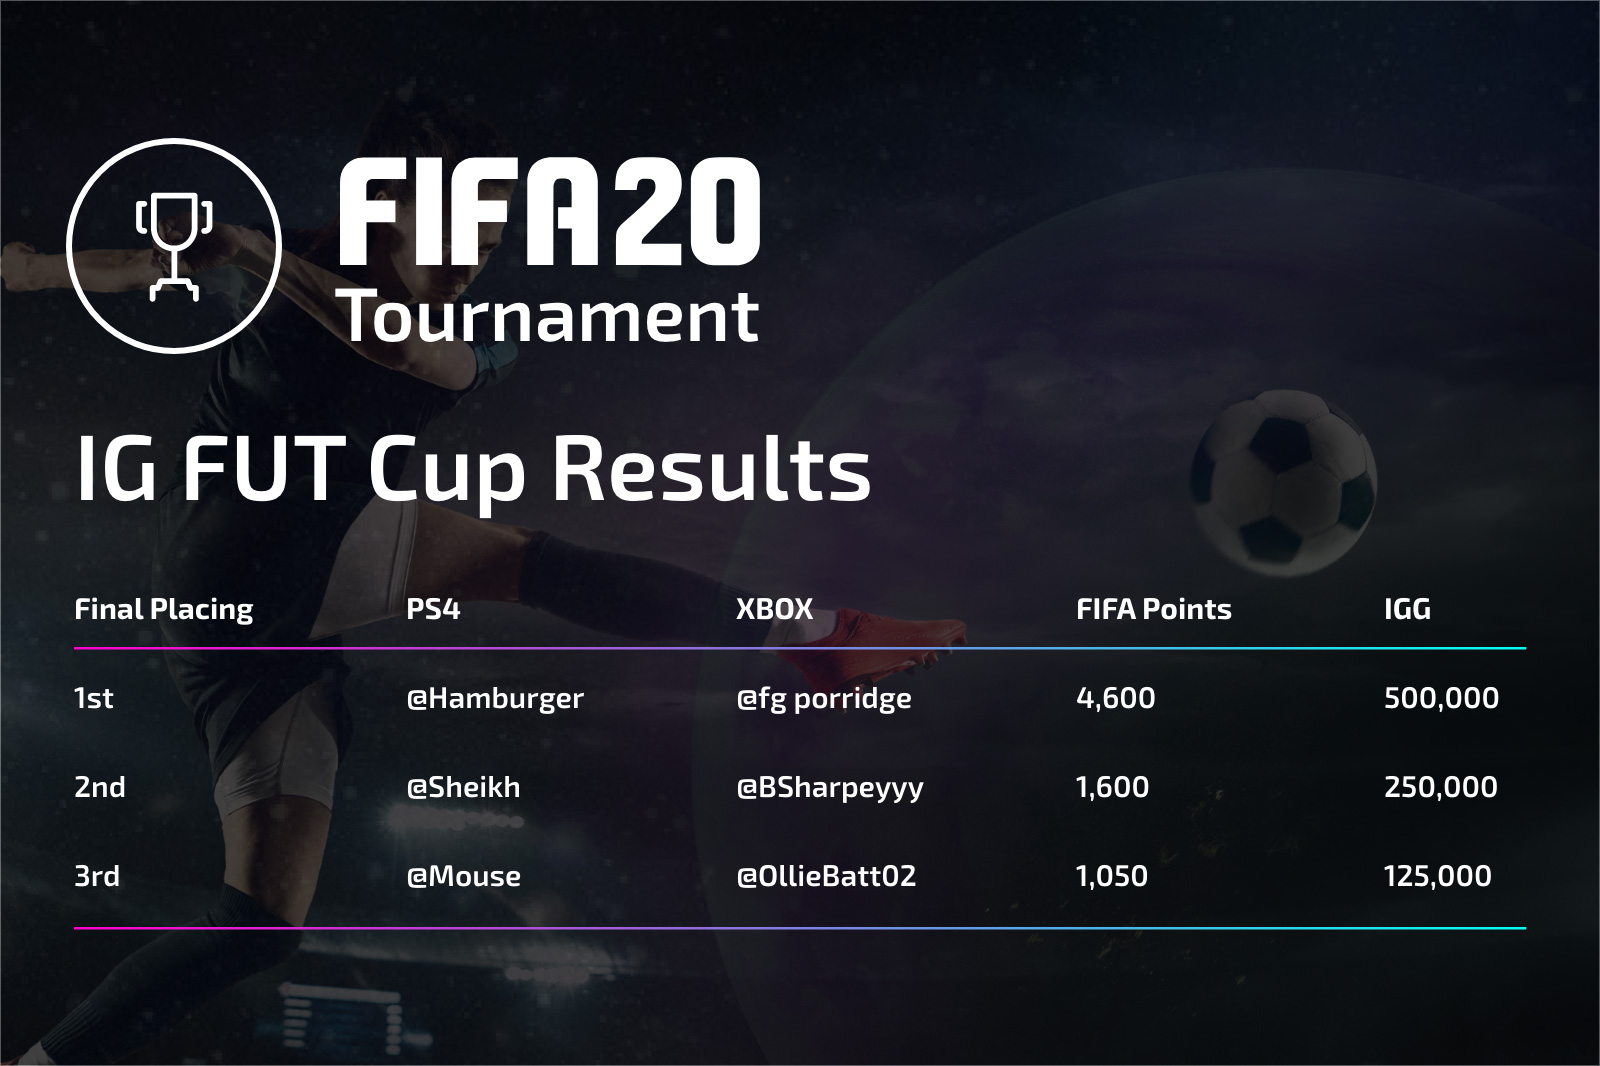 Congratulations to the T-3 participants from our IG FUT Cup tournaments!